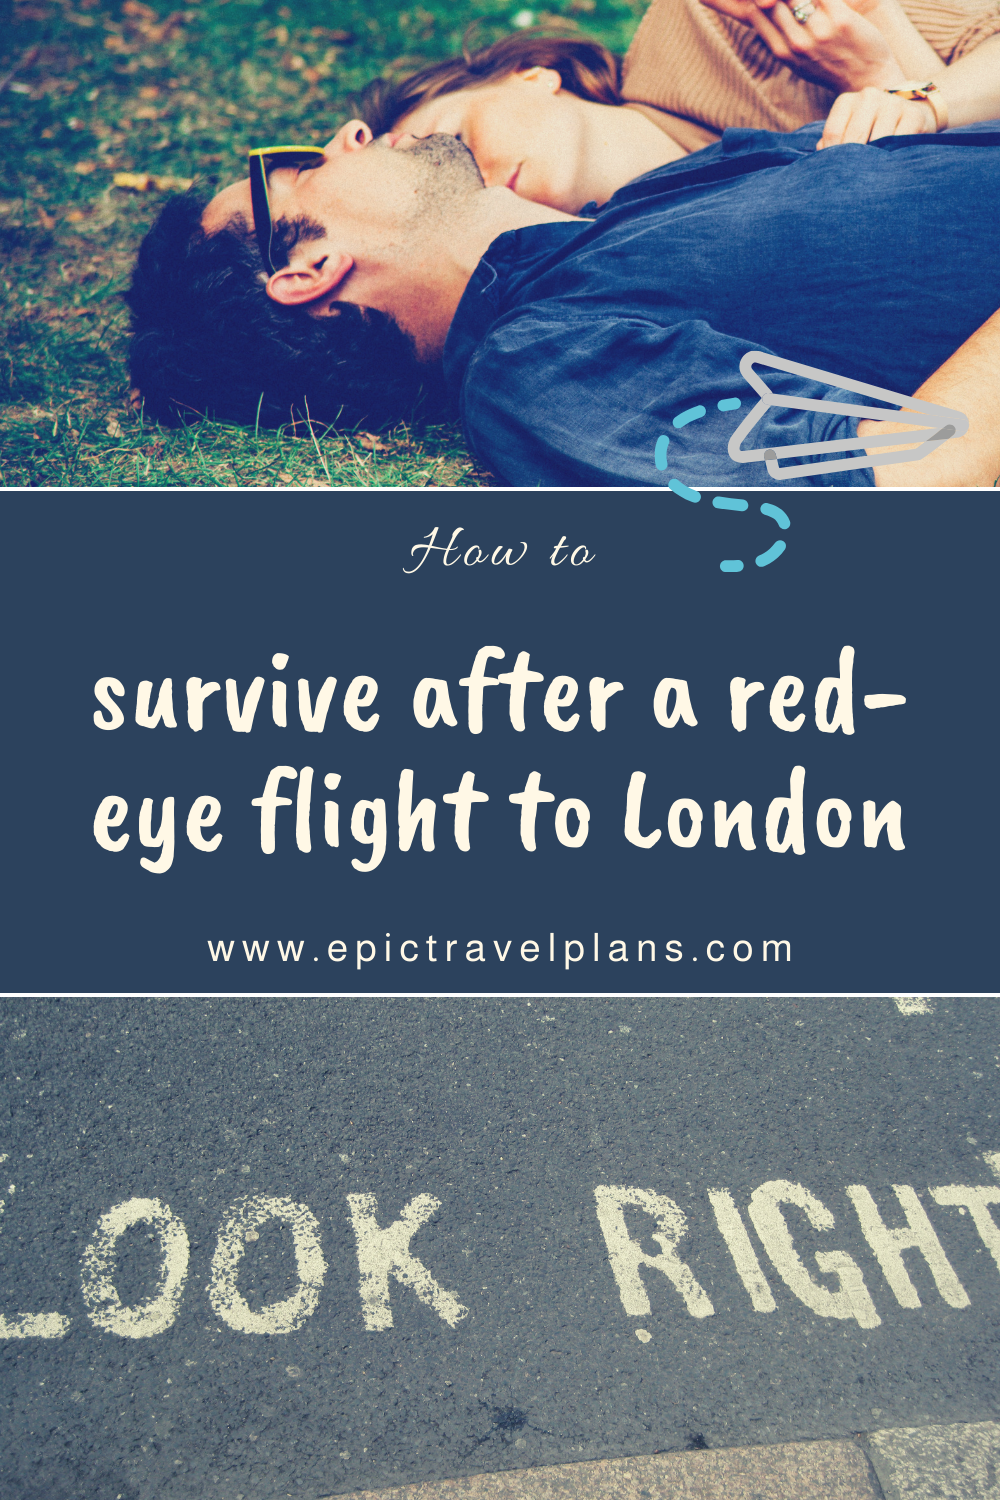 How to survive after a red-eye flight to London with your partner